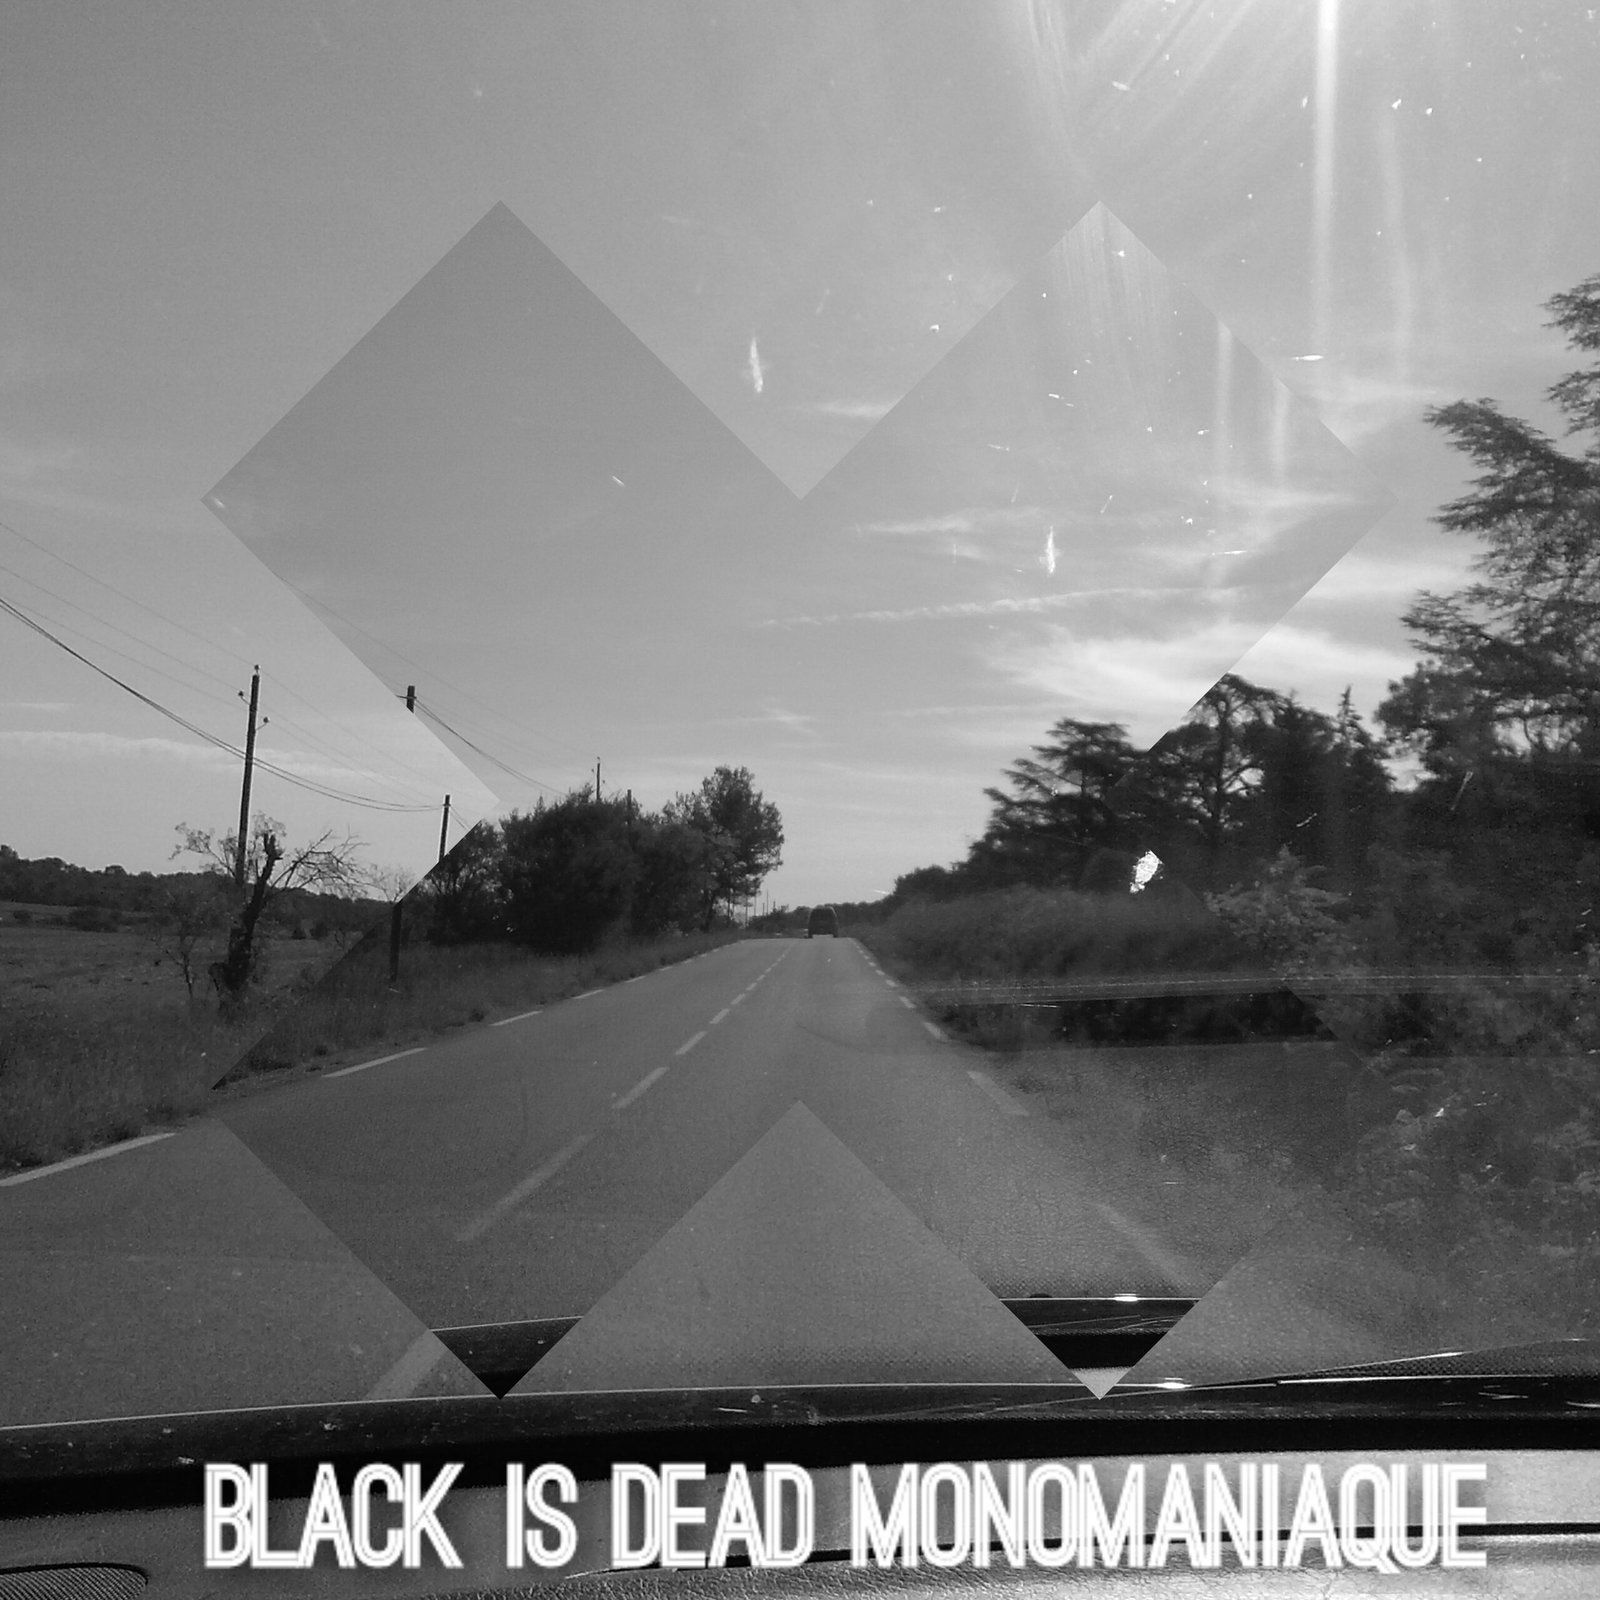 Blackmonomaniaque citation &amp&#x3B; hommage